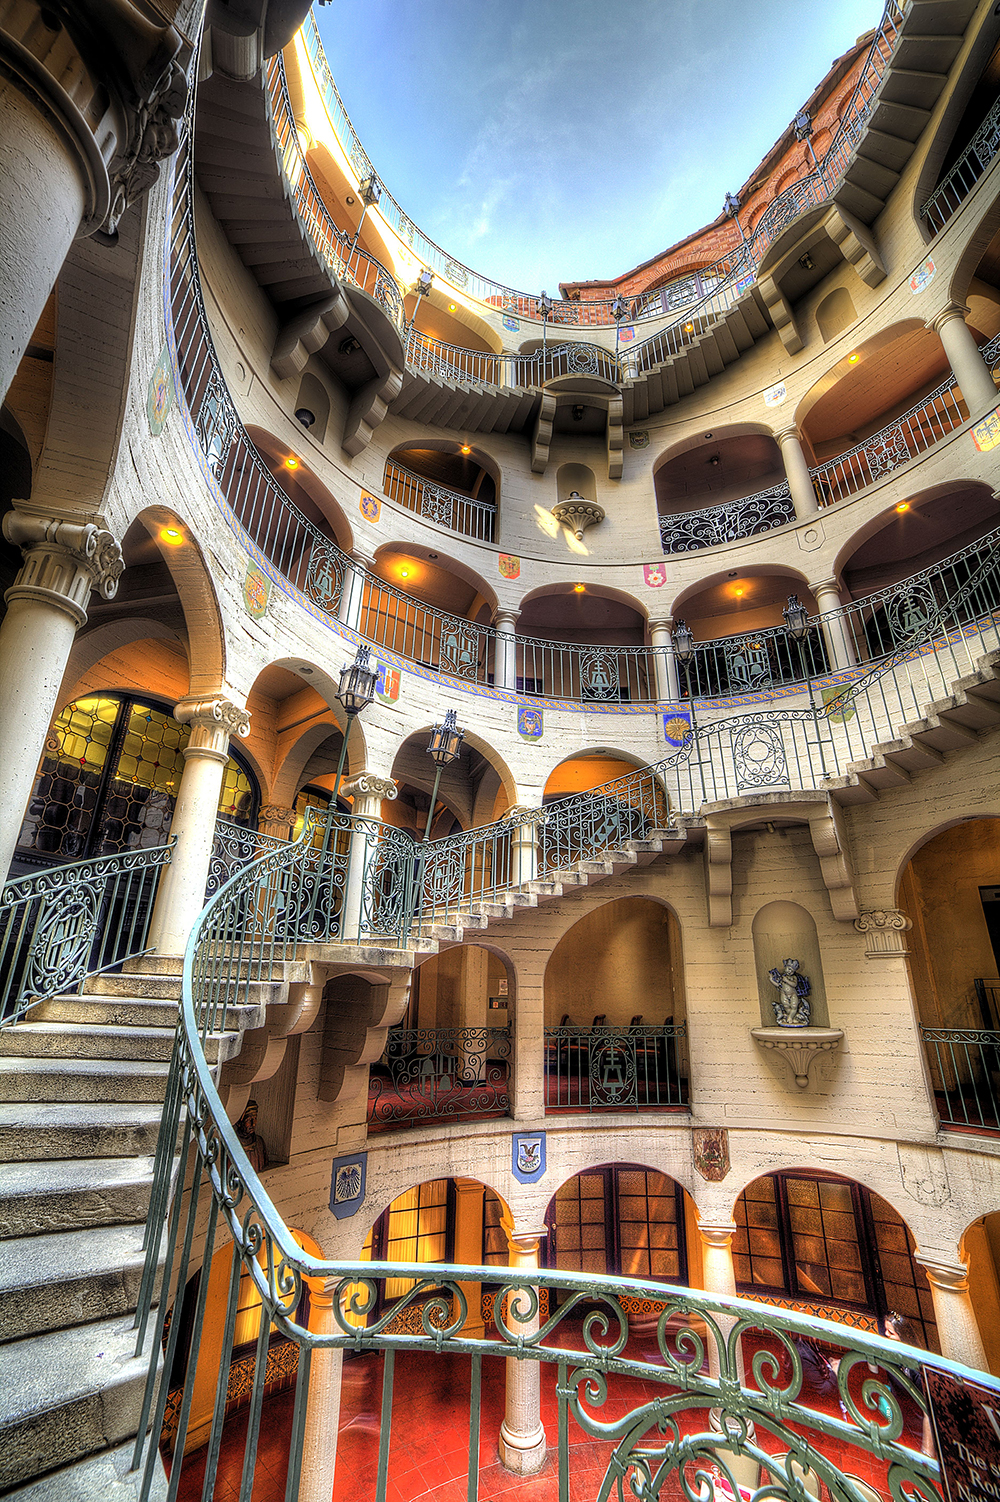 The Mission Inn Hotel & Spa is the Inland Empire's only AAA Four Diamond hotel.